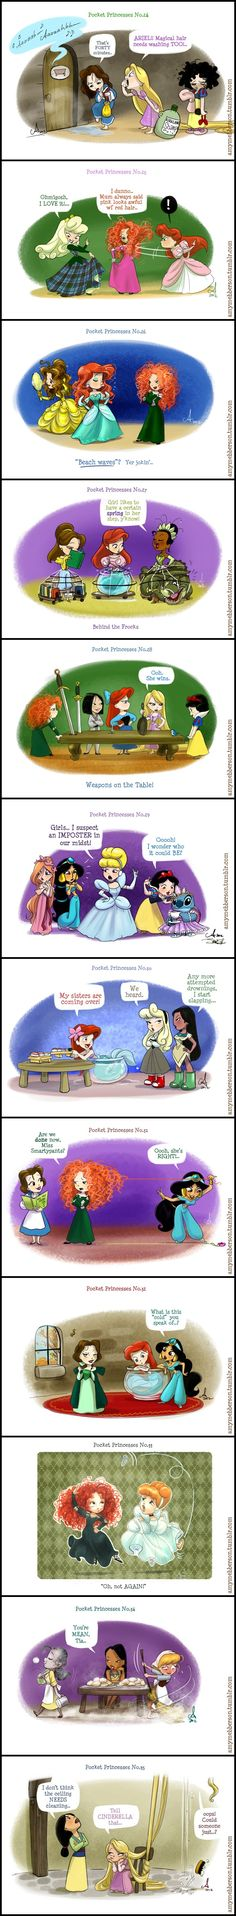 Pocket Princesses by Amy Mebberson